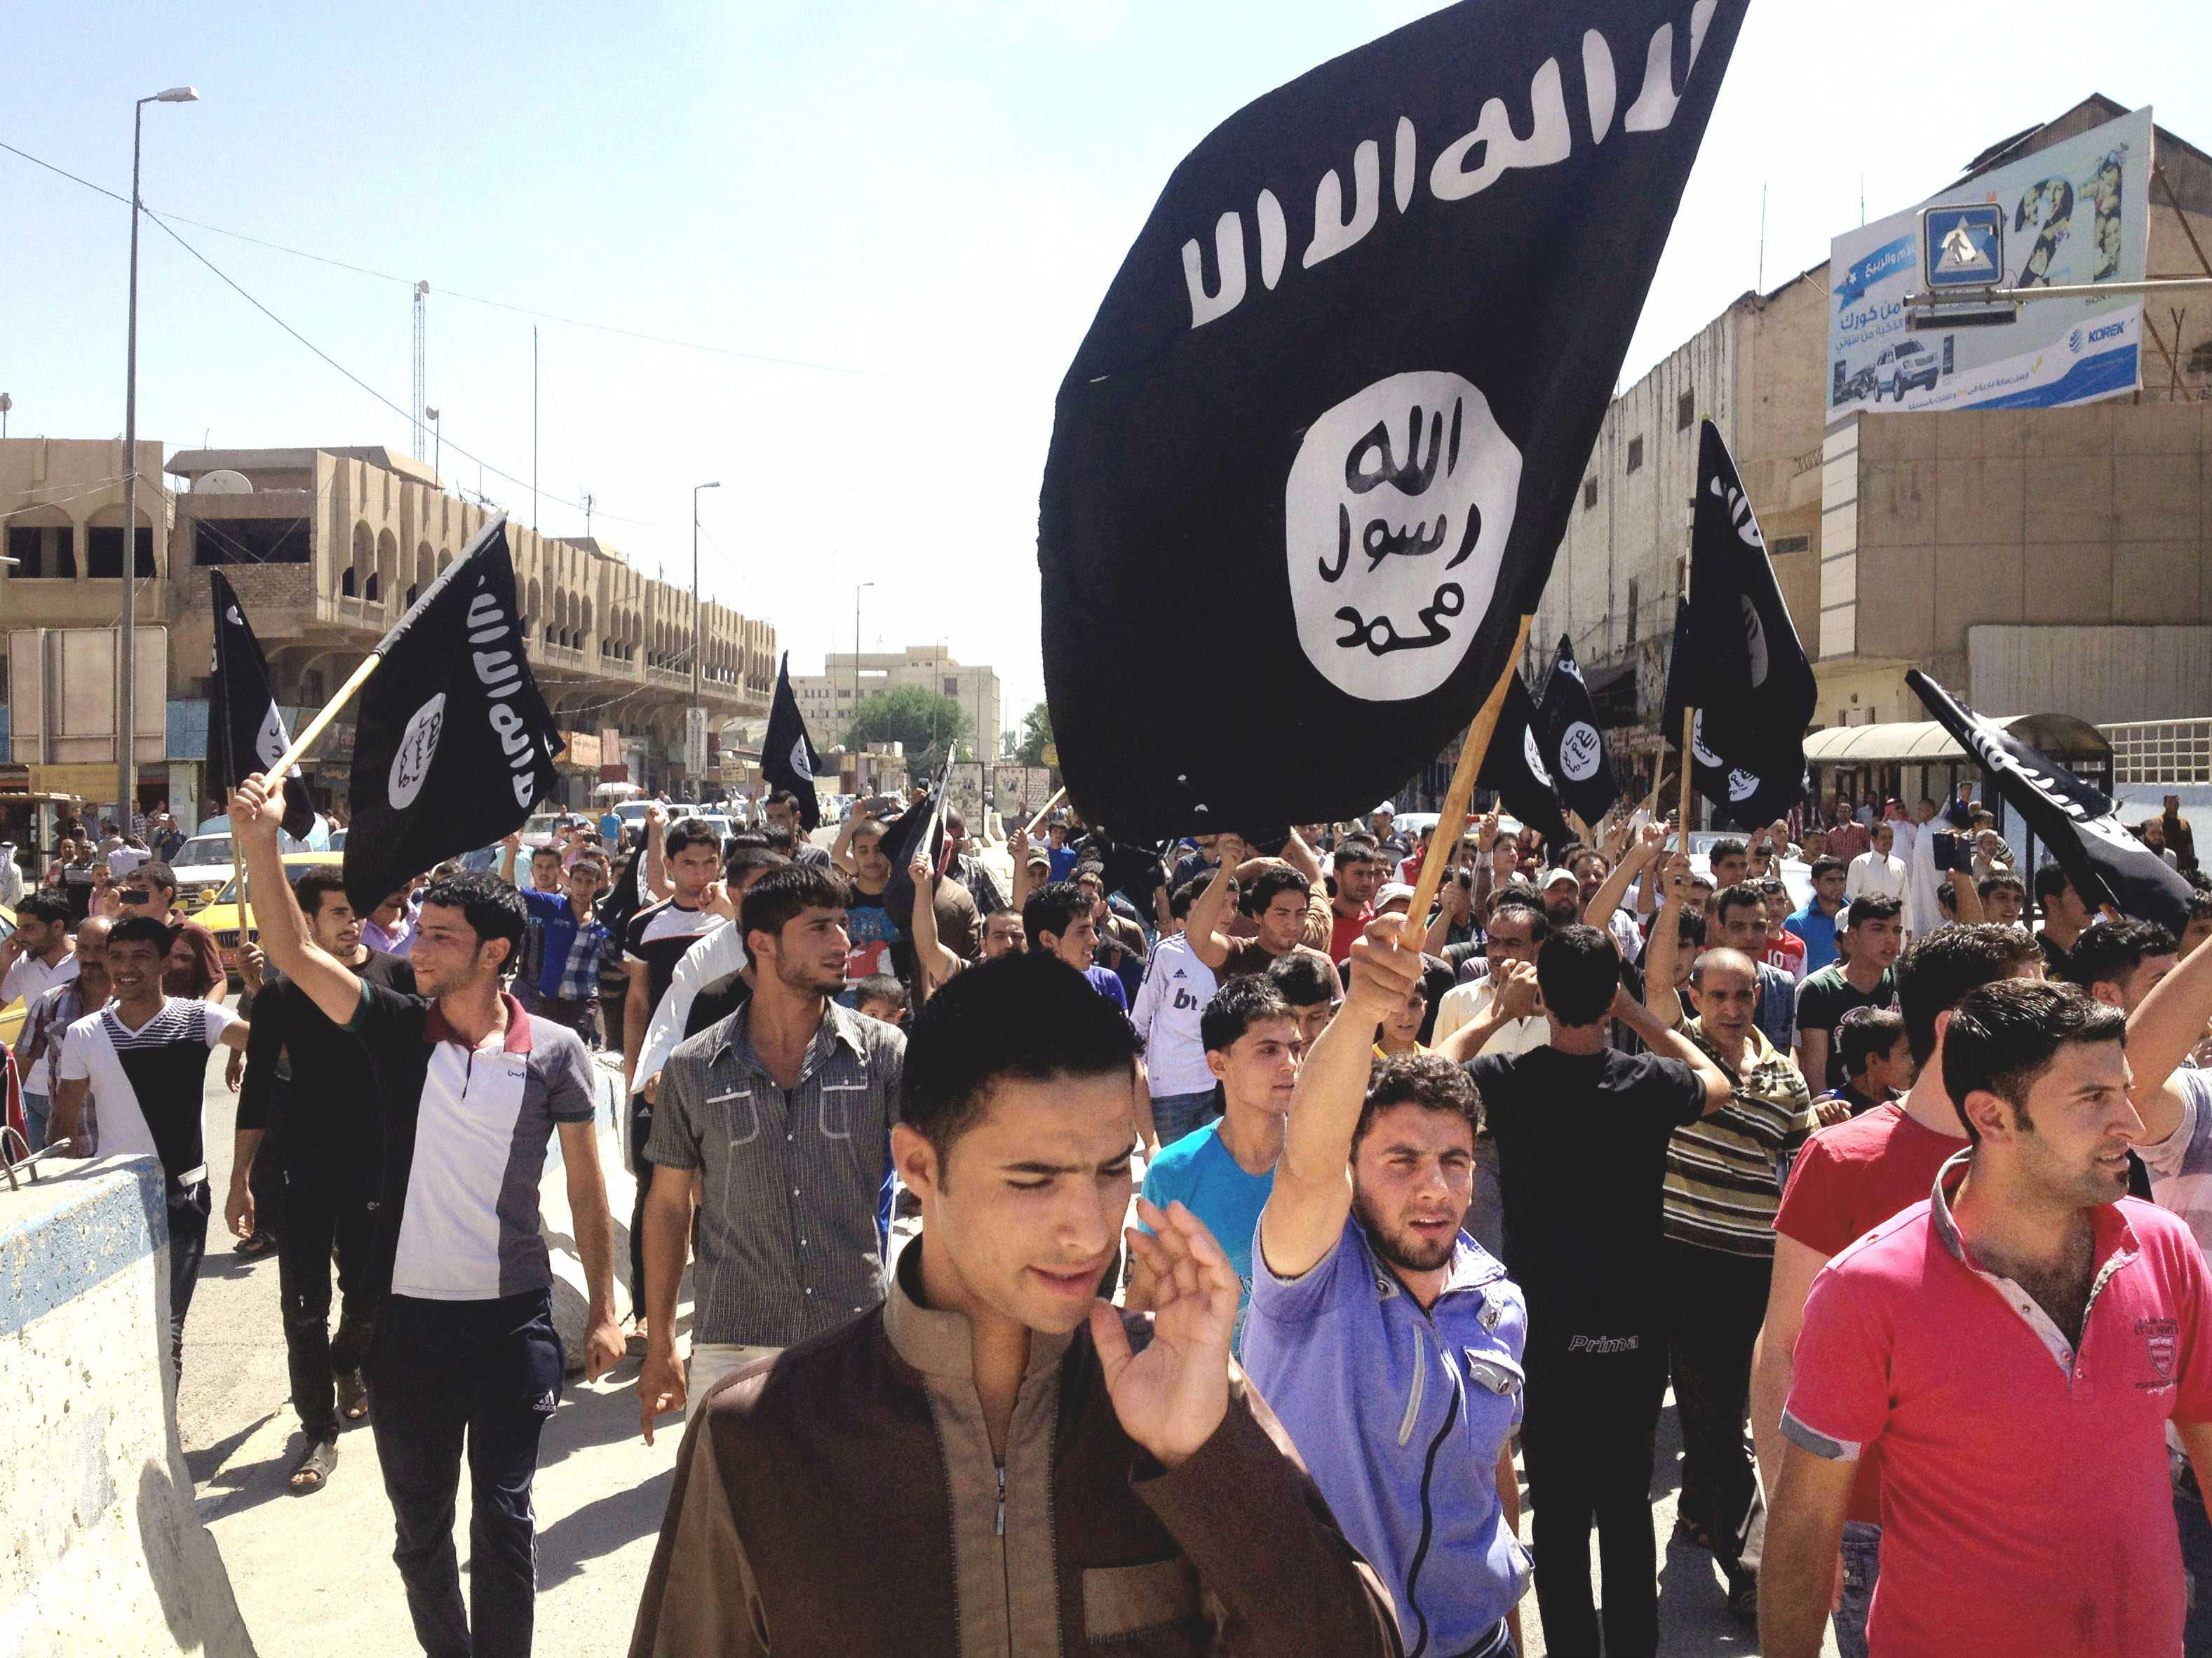 There's a troubling reason at the heart of tens of thousands flooding Syria and Iraq to become jihadists